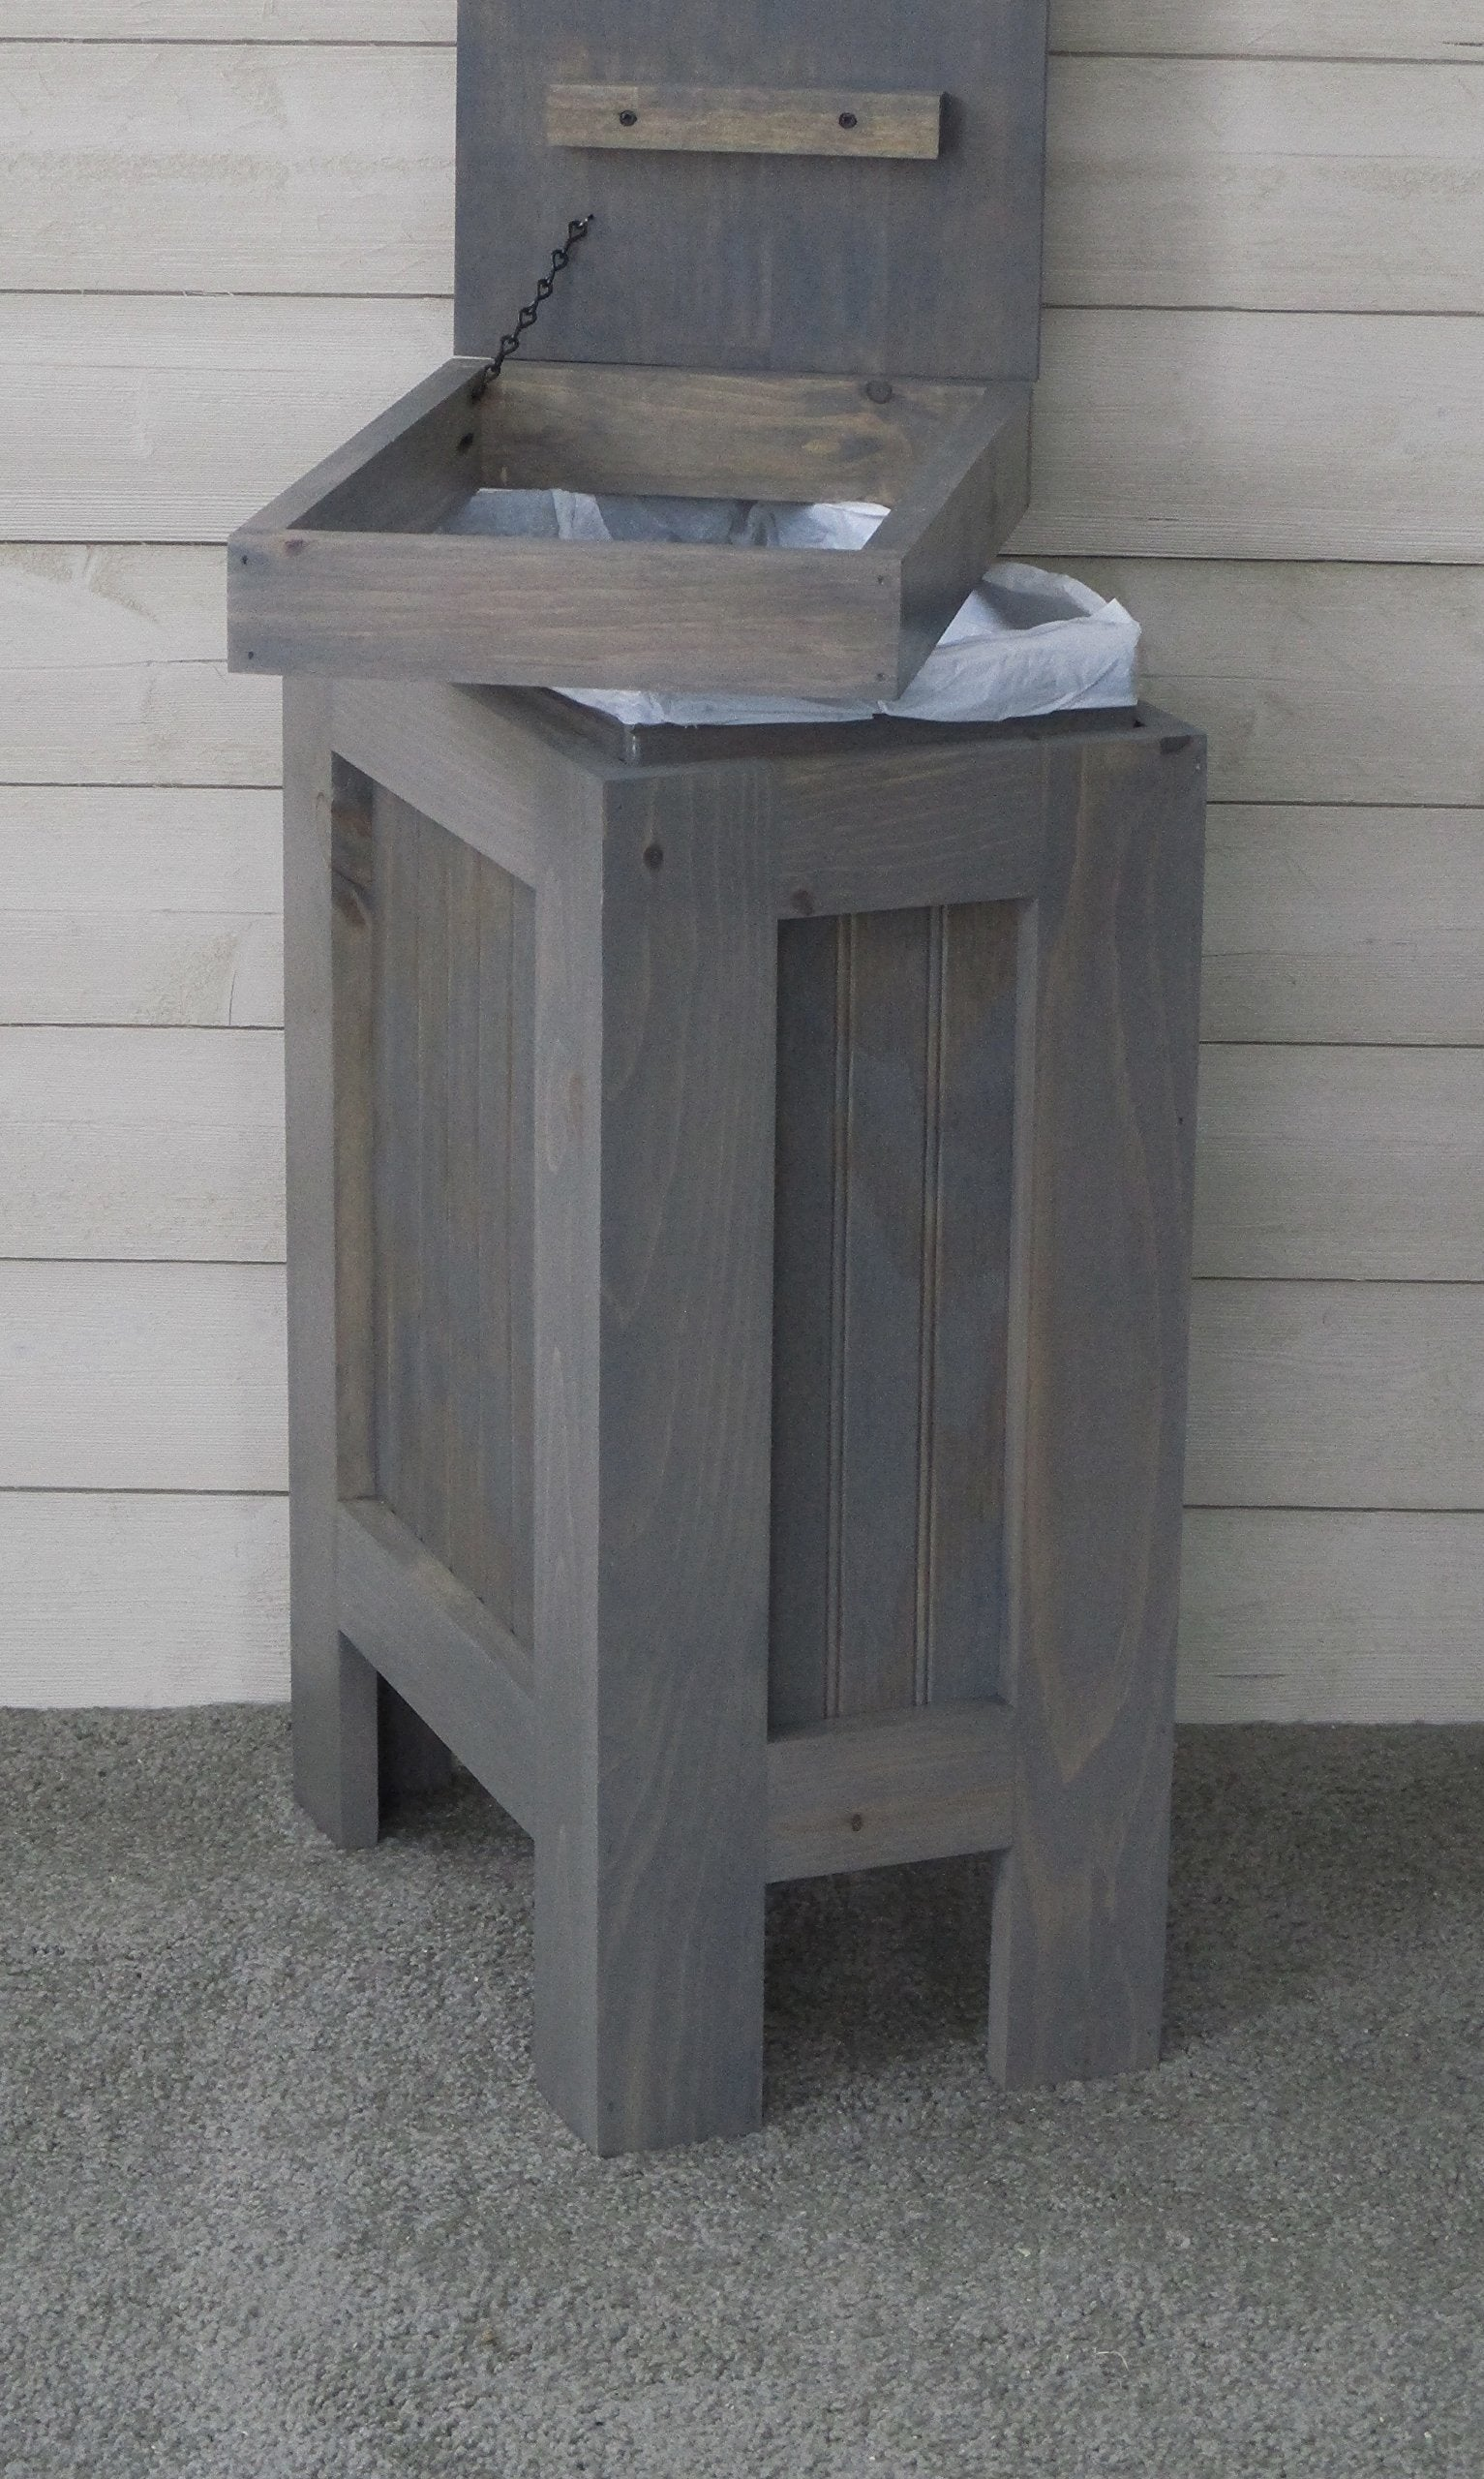 Best rustic wood trash bin kitchen trash can wood trash can trash cabinet dog food storage 13 gallon recycle bin gray stain metal handle handmade in usa by chris buffalowoodshop